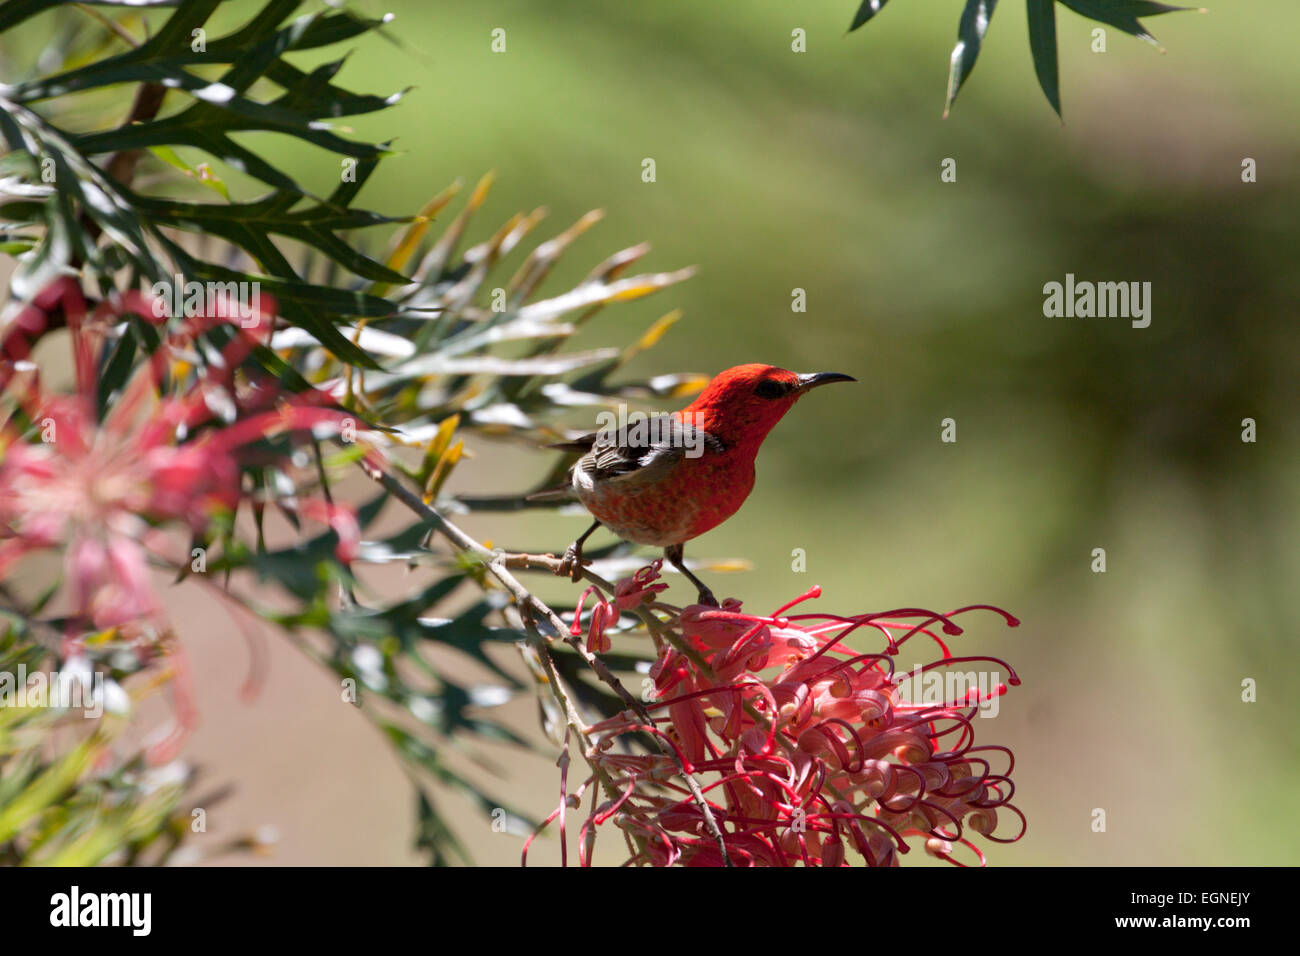 Male Scarlet Honeyeater (Myzomela sanguinolenta), Newrybar, New South Wales, Australia - Stock Image